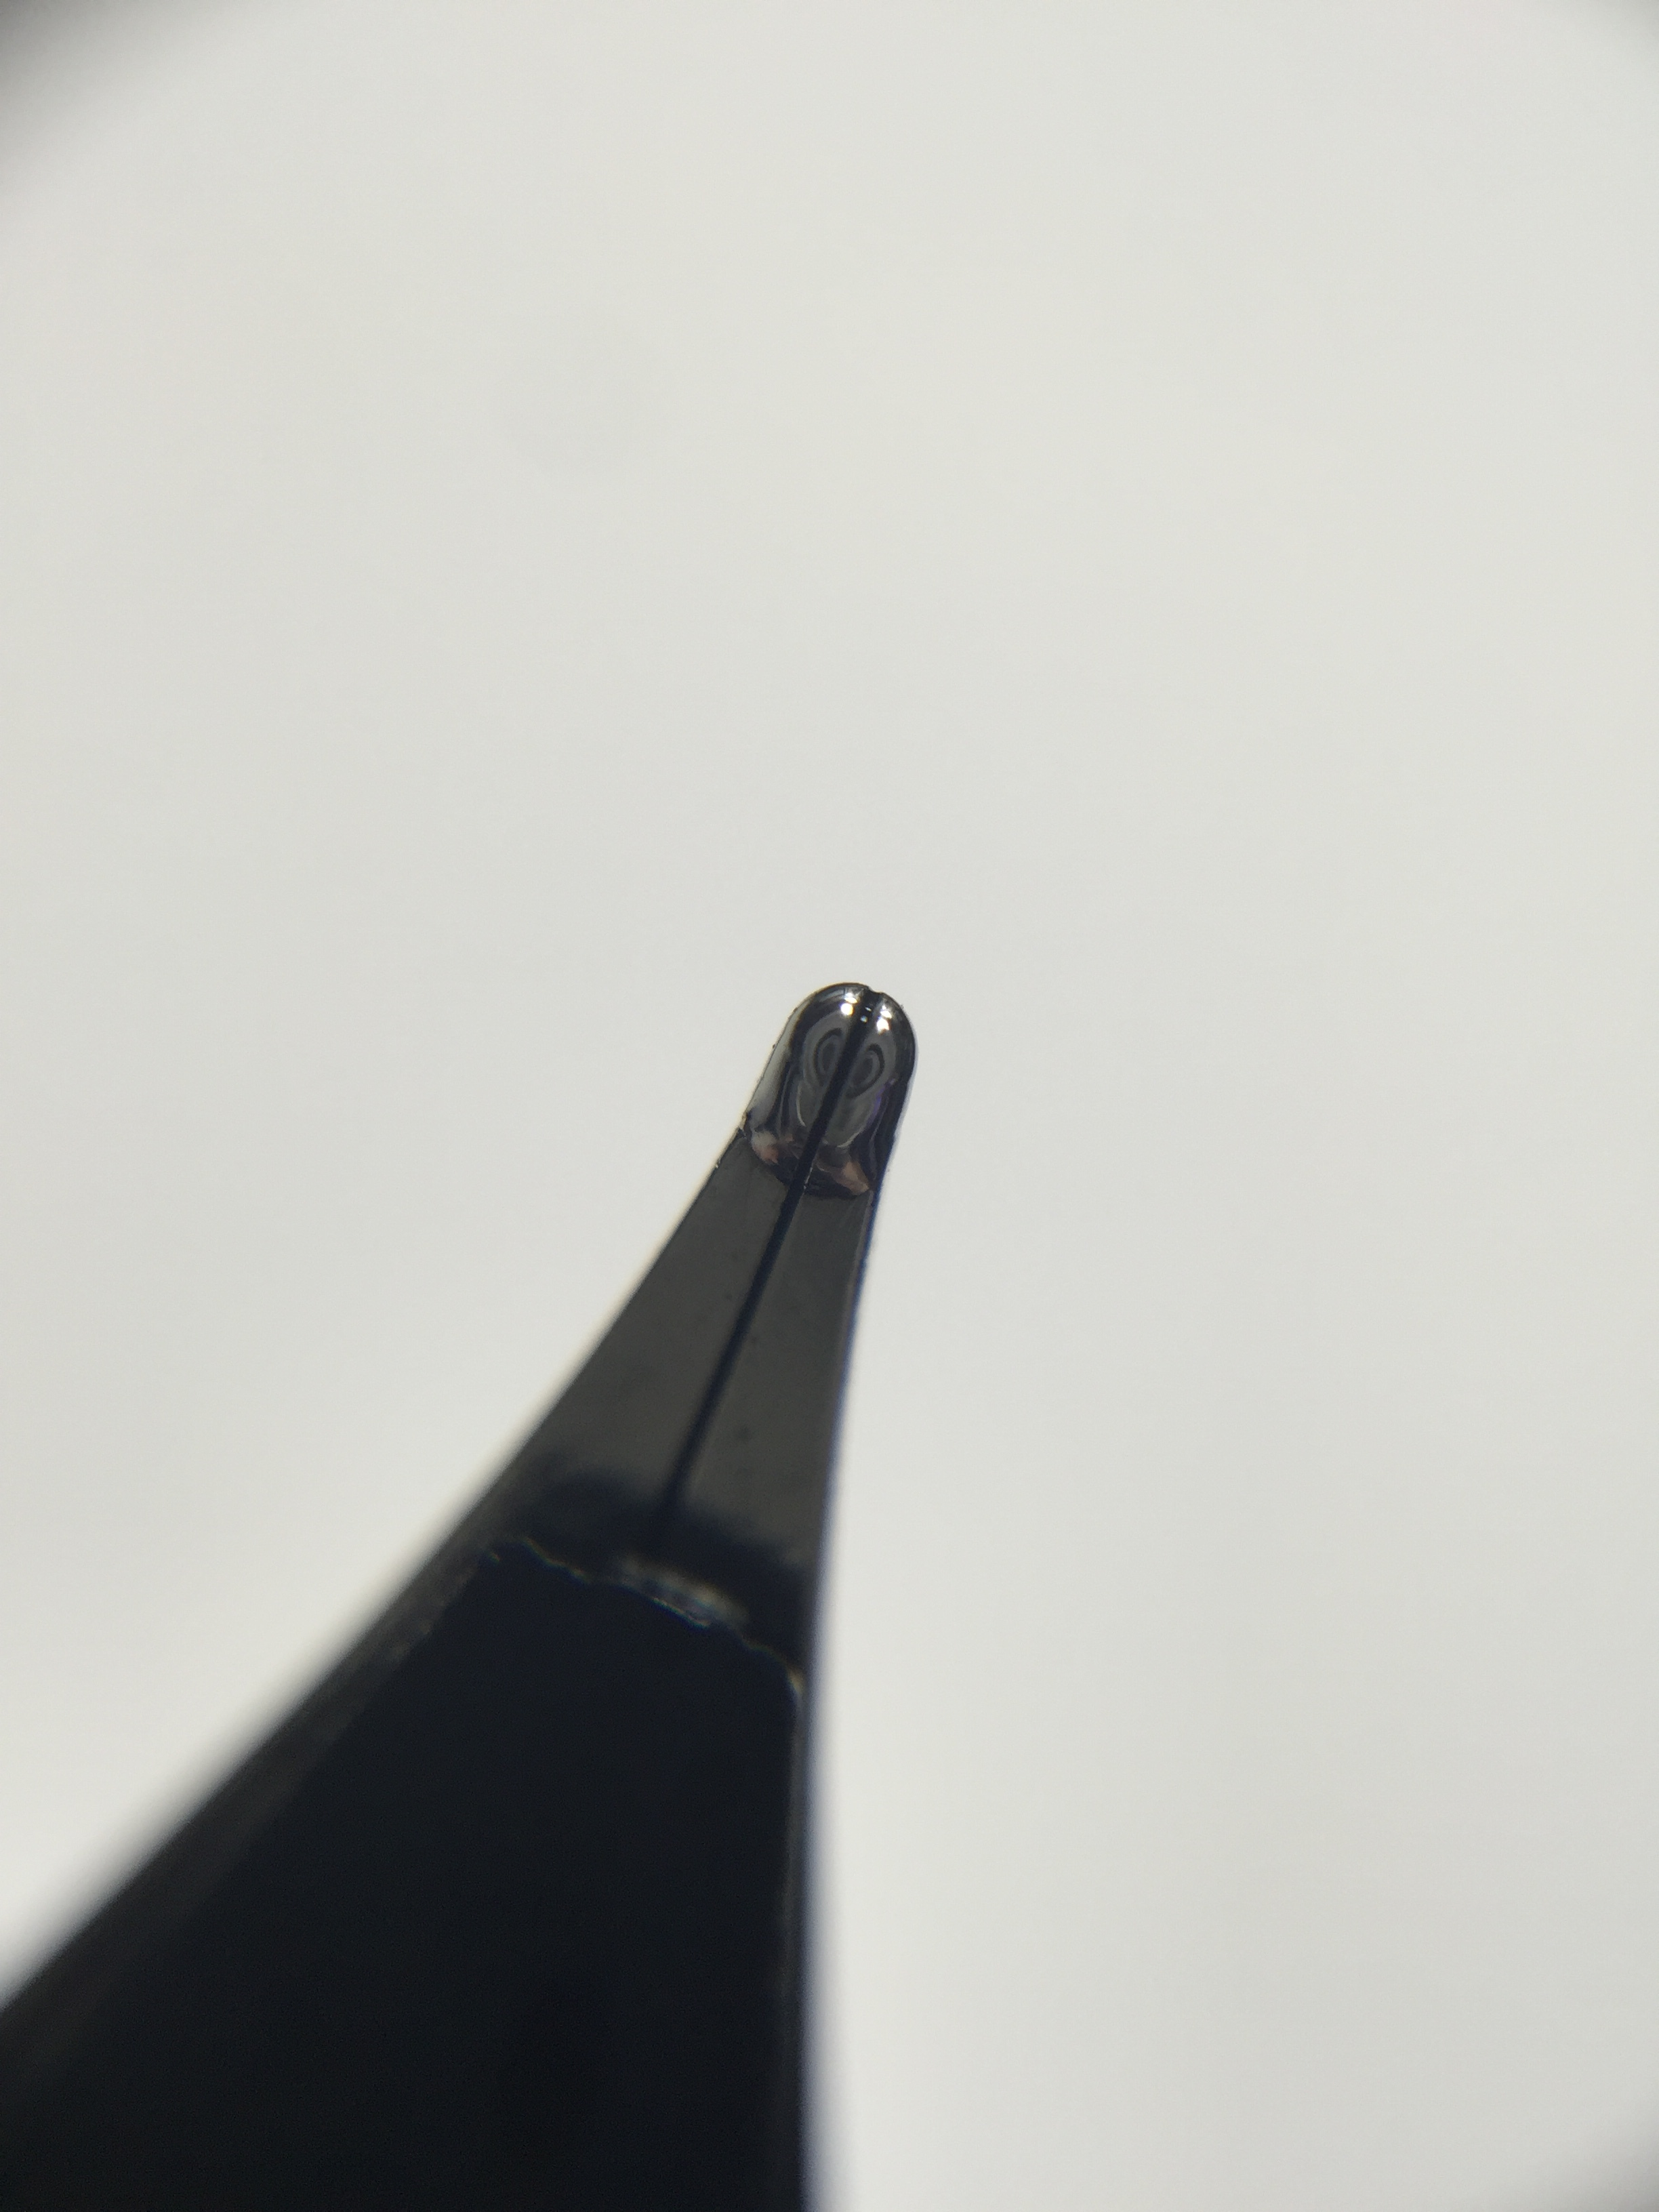 Underside of the nib